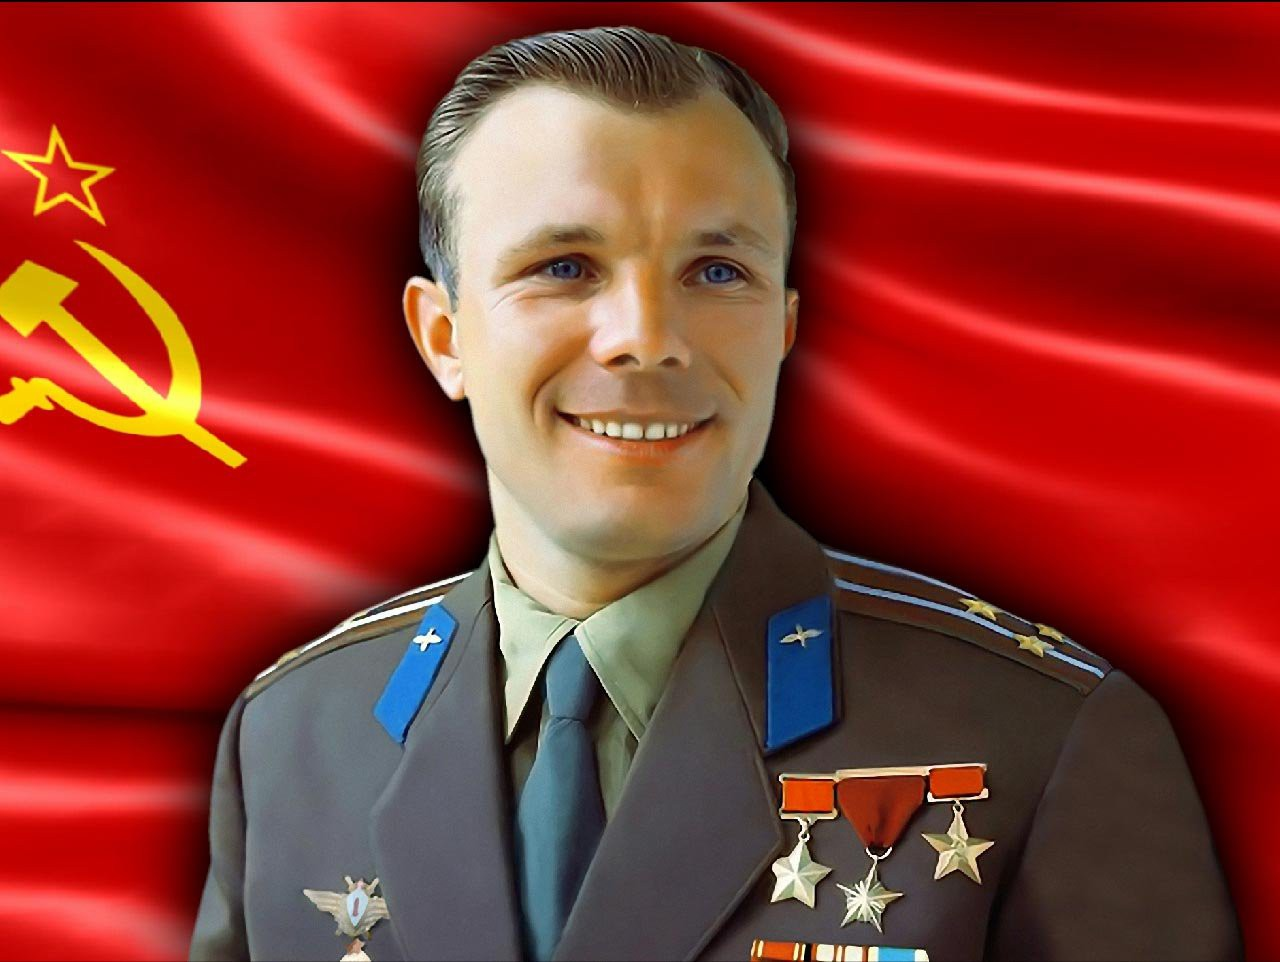 Yuri Gagarin HQ wallpapers